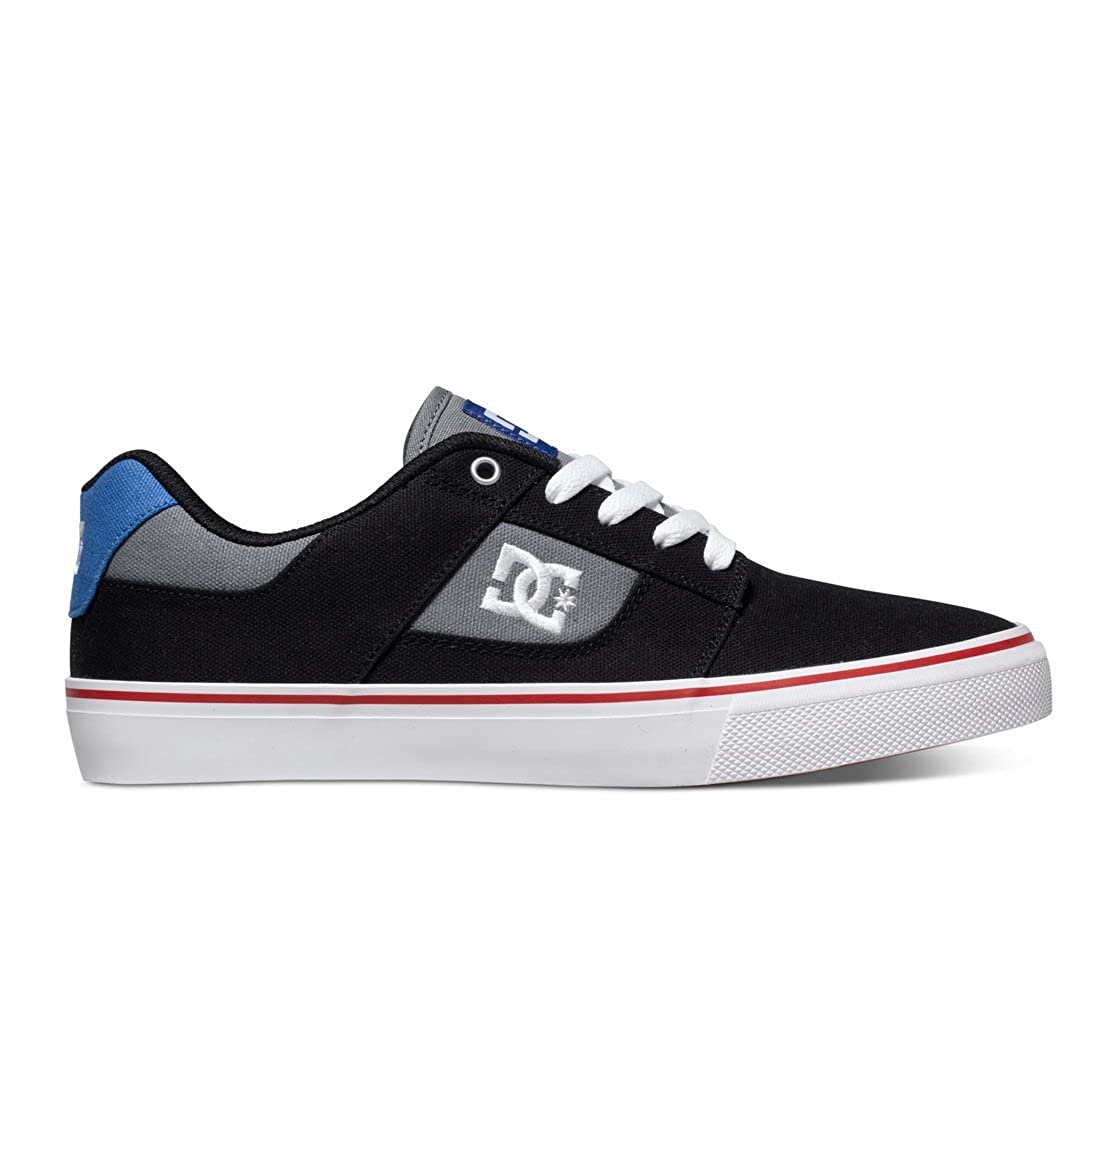 b8b2158ef98cd DC Shoes Mens Shoes Bridge Tx - Low-Top Shoes - Men - US 9 - Black Black/Dk  Grey/Athletic Red US 9 / UK 8 / EU 42